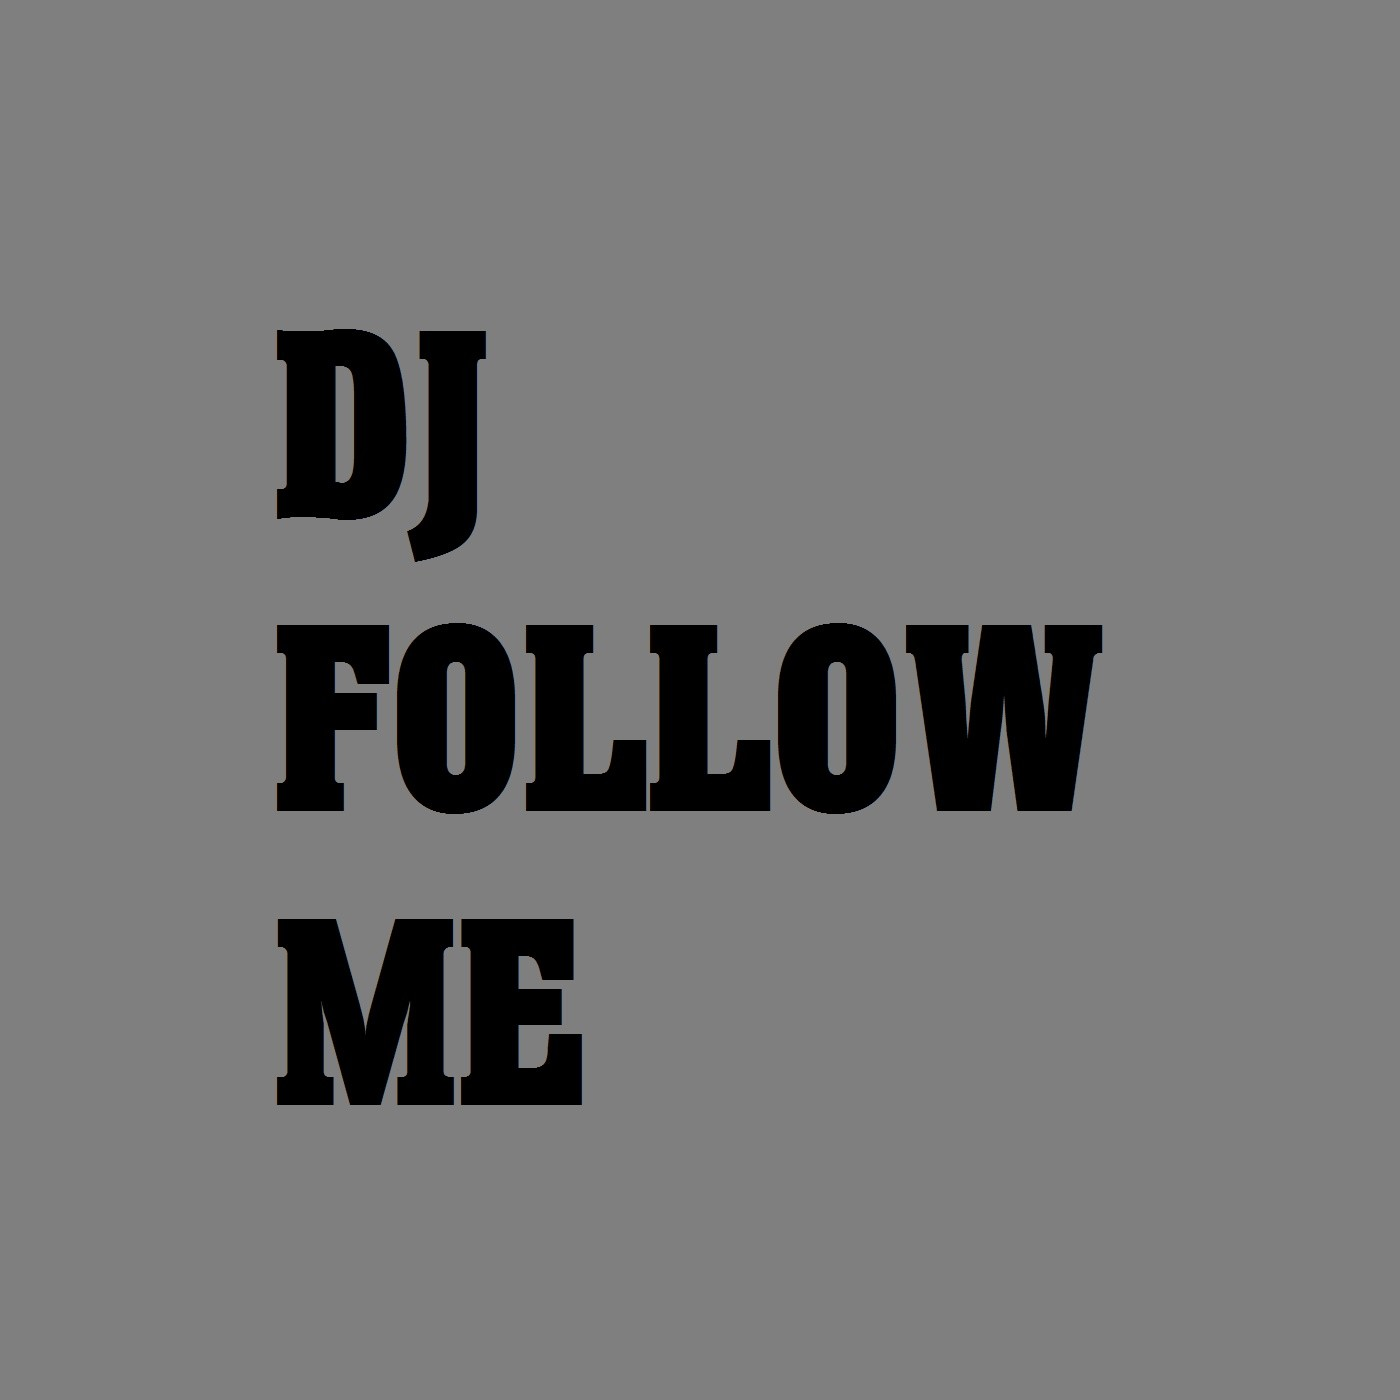 DJ FollowMe